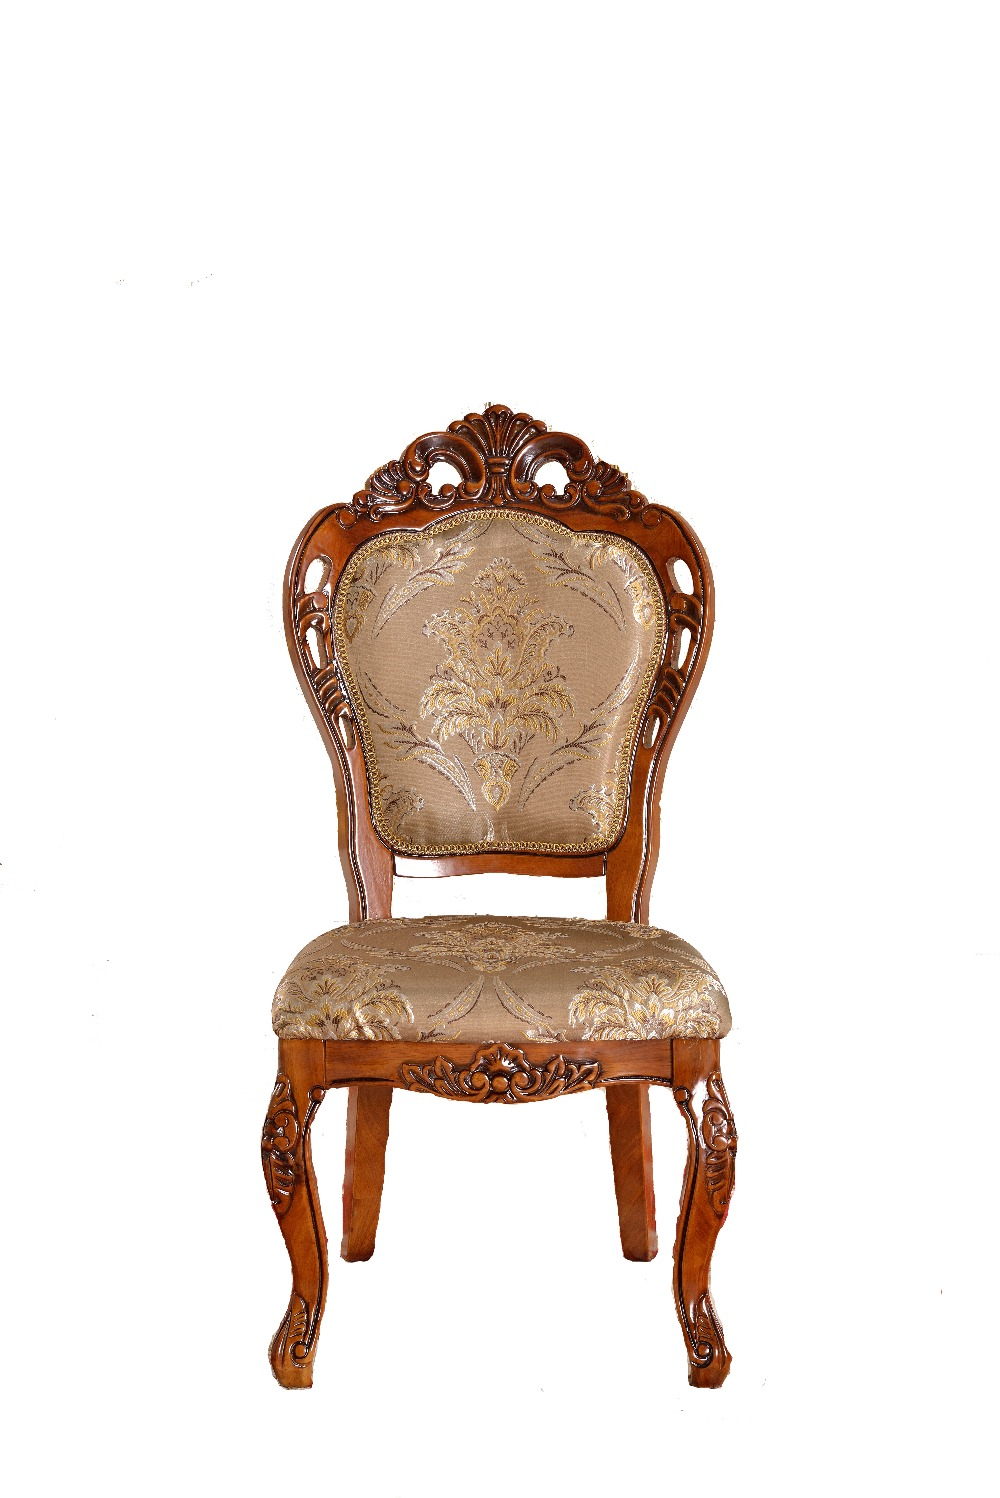 European Style Side Chair Dining Chair Hotel Restaurant Furniture Combination Banquet Dinner Chair Stool Carved Wood Chair 906(China (Mainland))